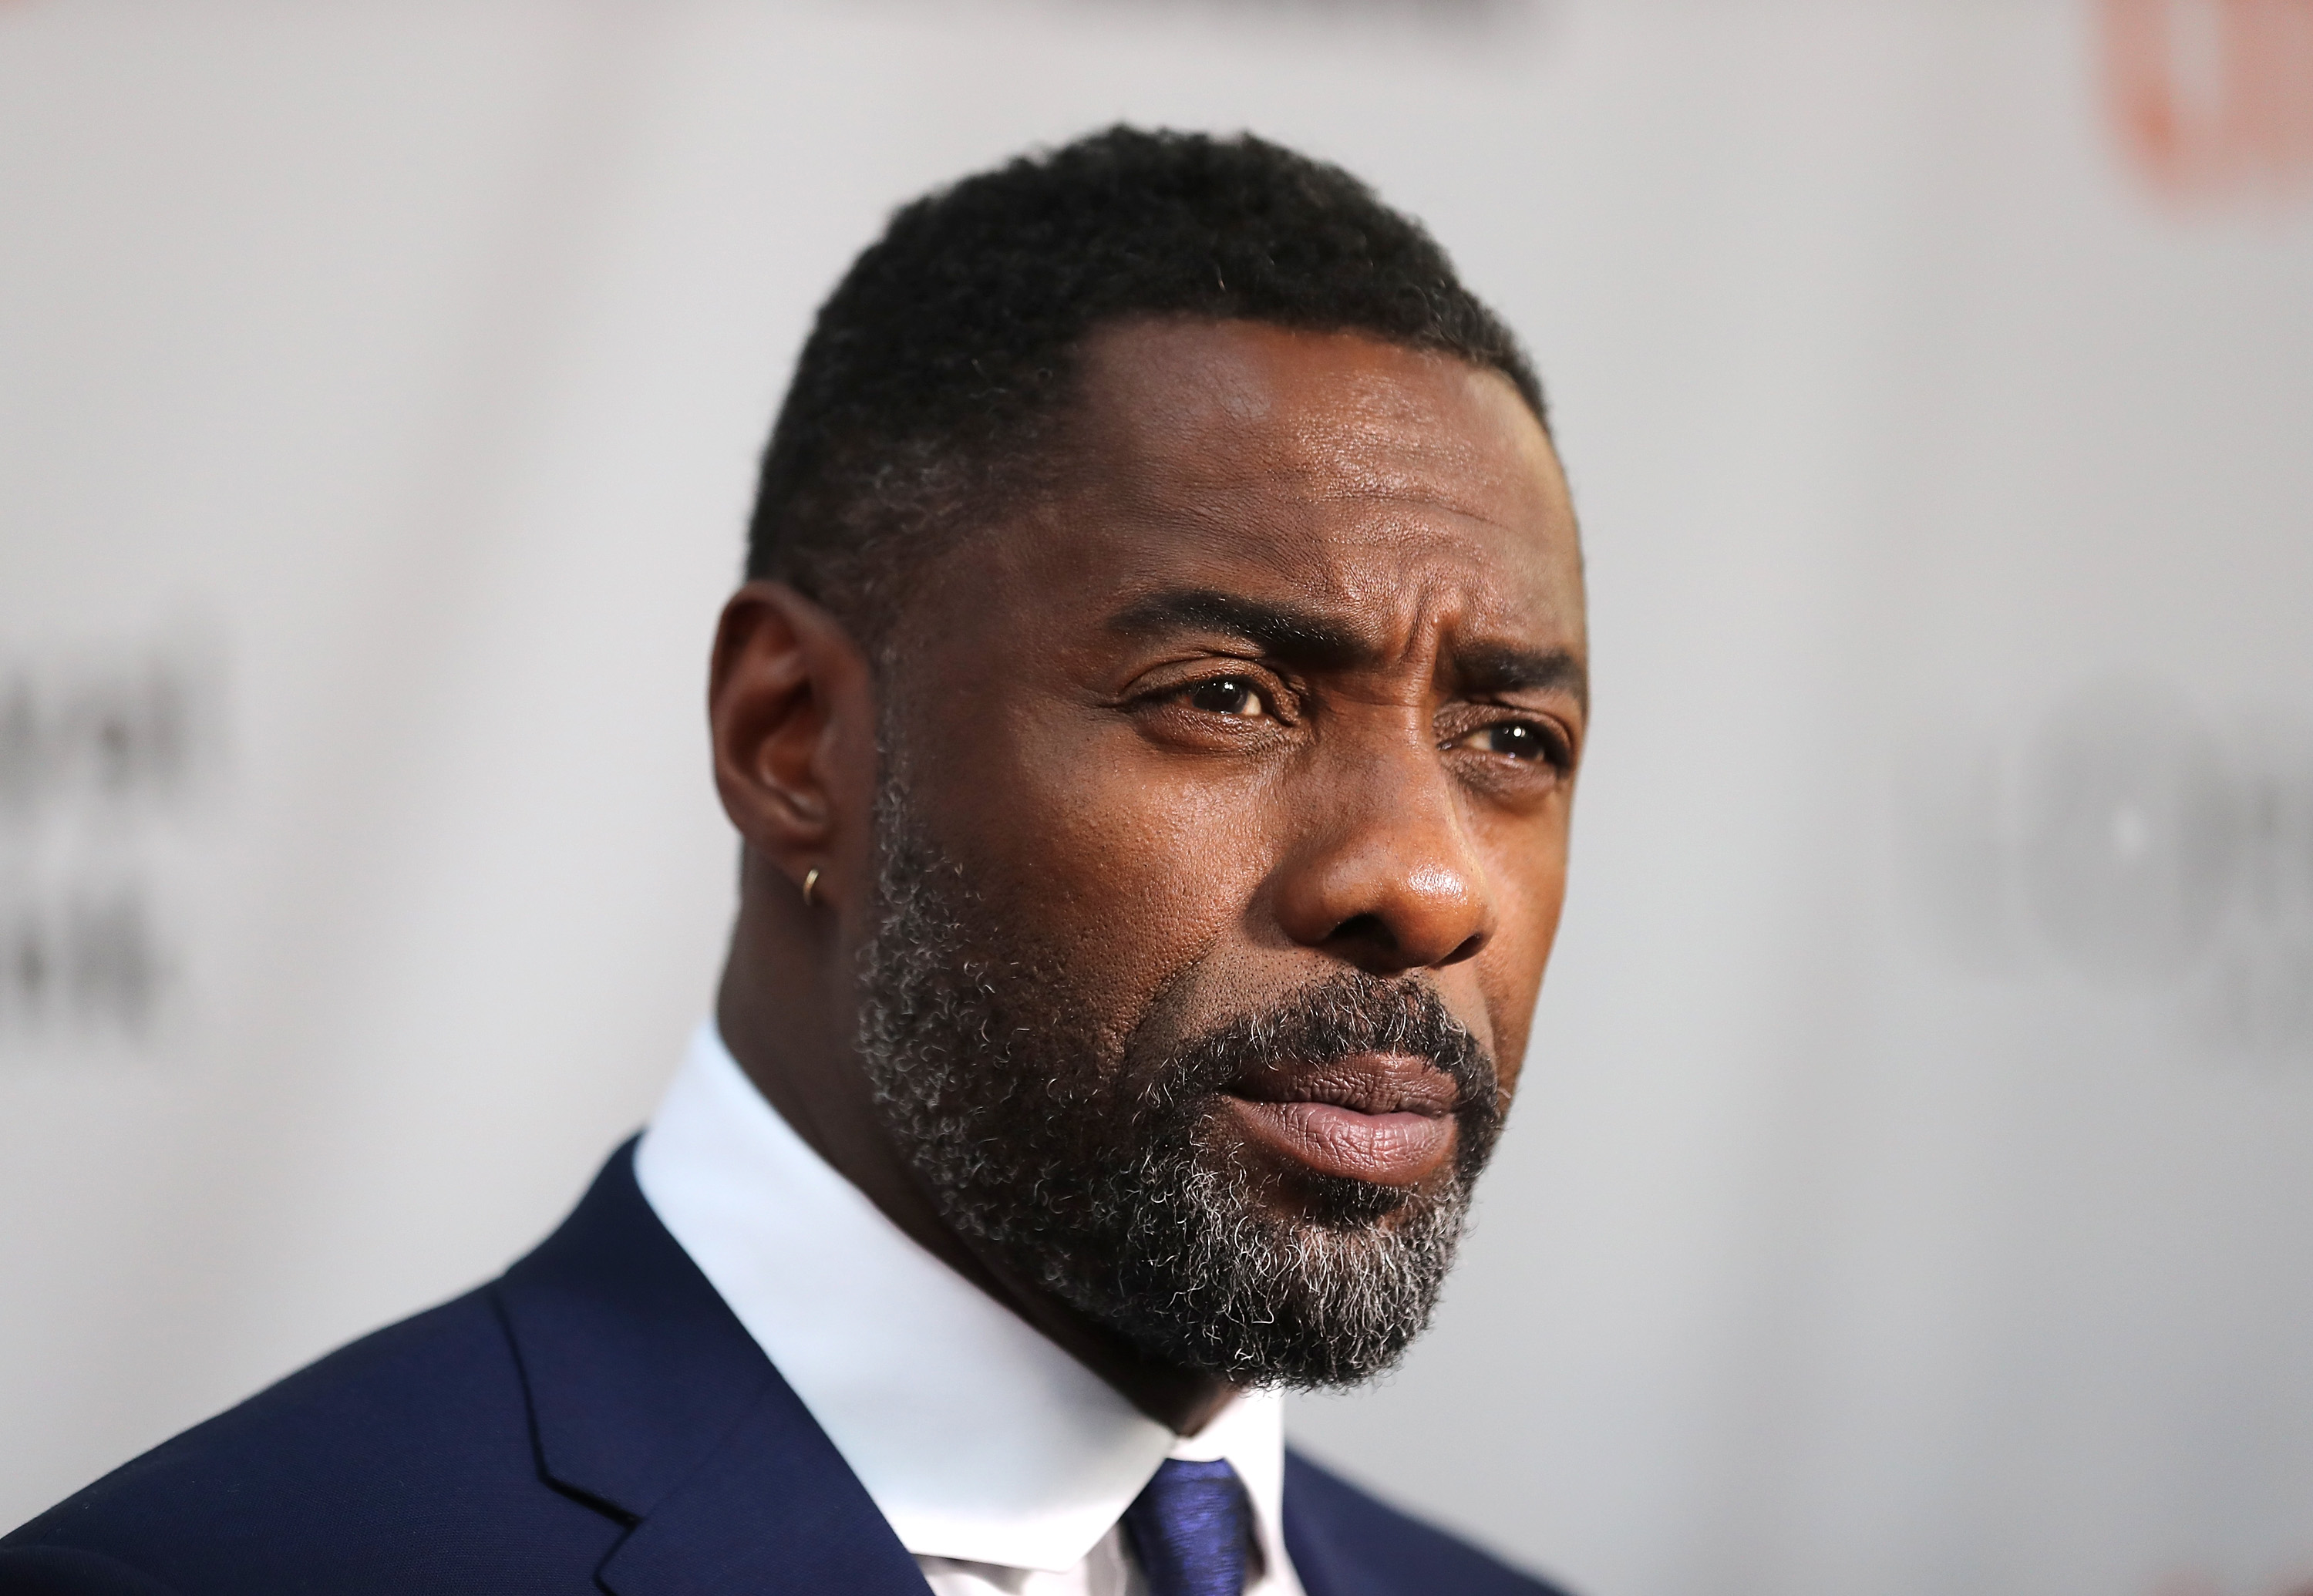 Idris-Elba-Wiki-Biography-Age-Height-Weight-Profile-Body-Measurement